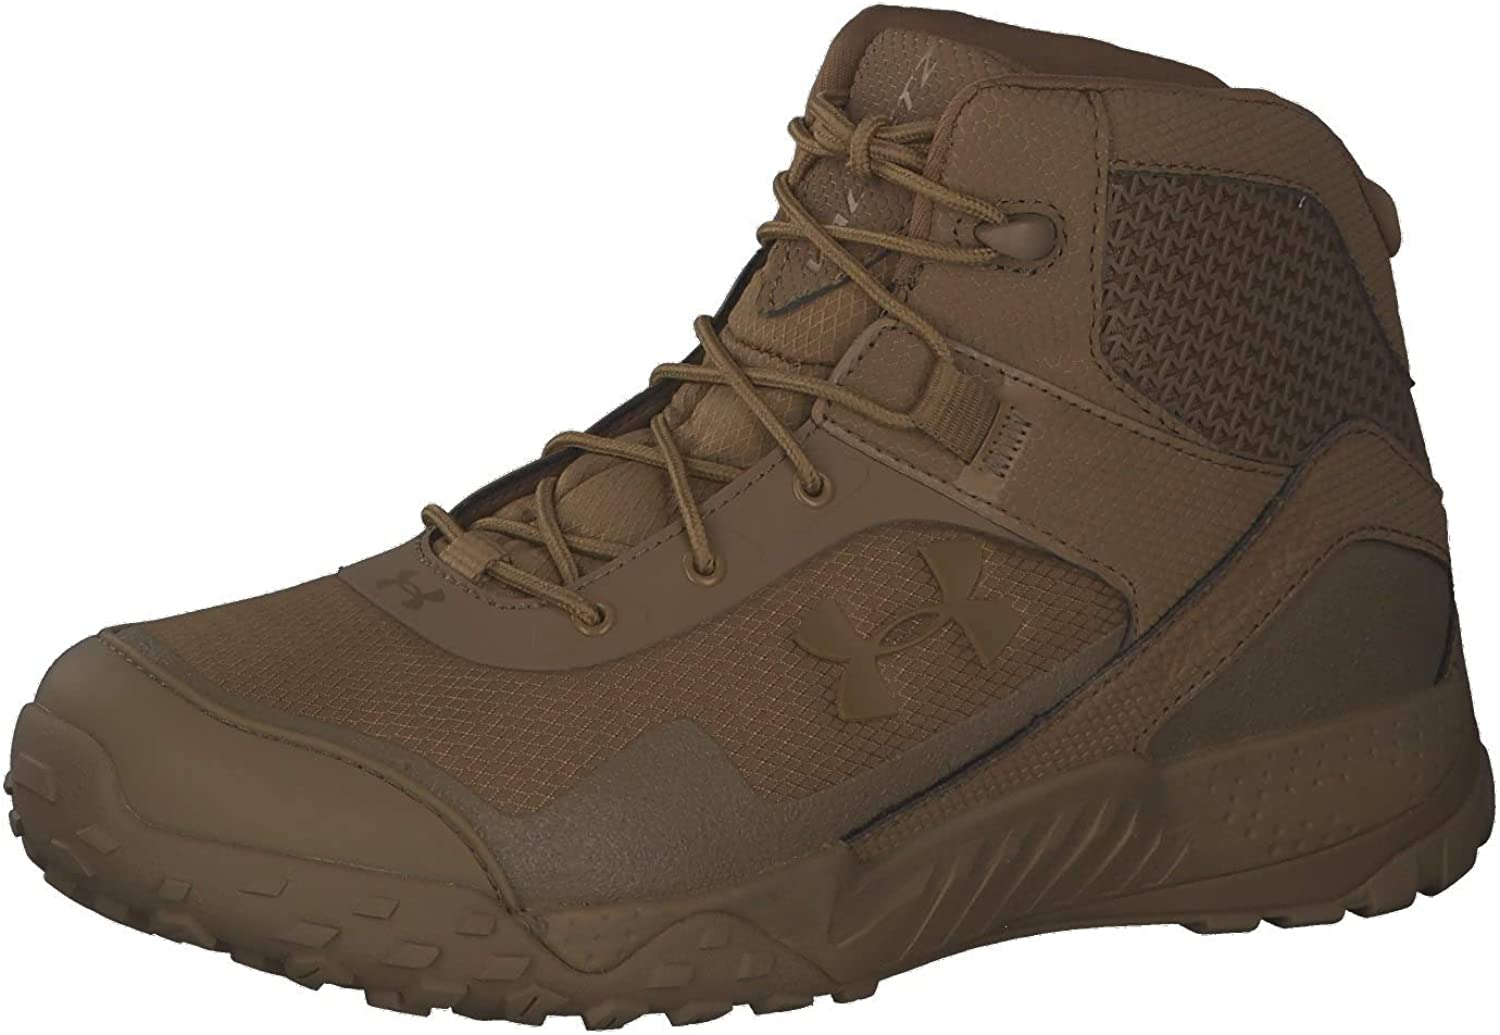 Under Armour Cheap In stock mail order sales Men's Valsetz Rts Military 1.5 Tactical 5-inch and